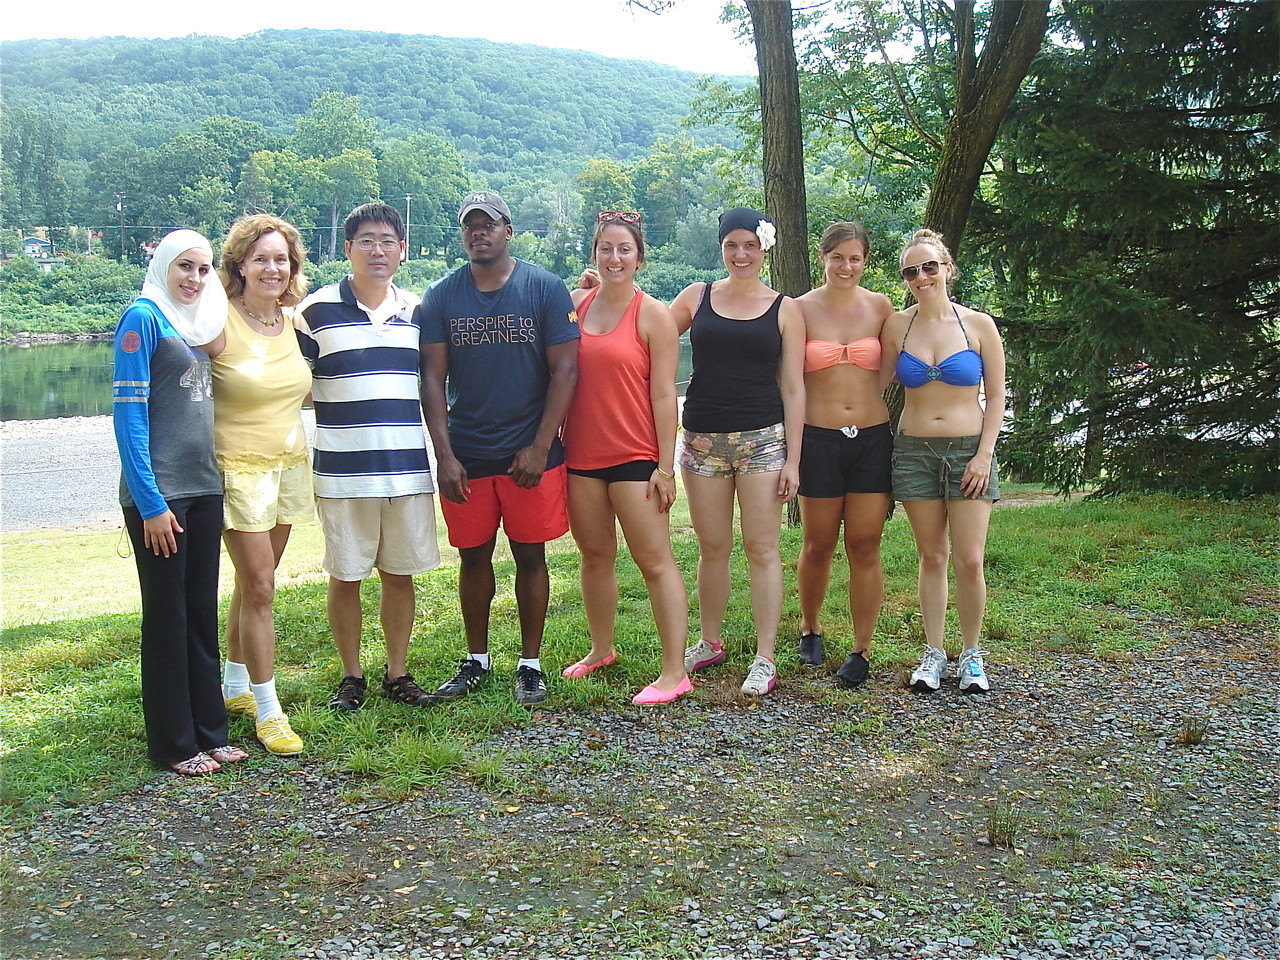 Gudas Lab Trip, July 23, 2013  Kayaking in the Catskills!